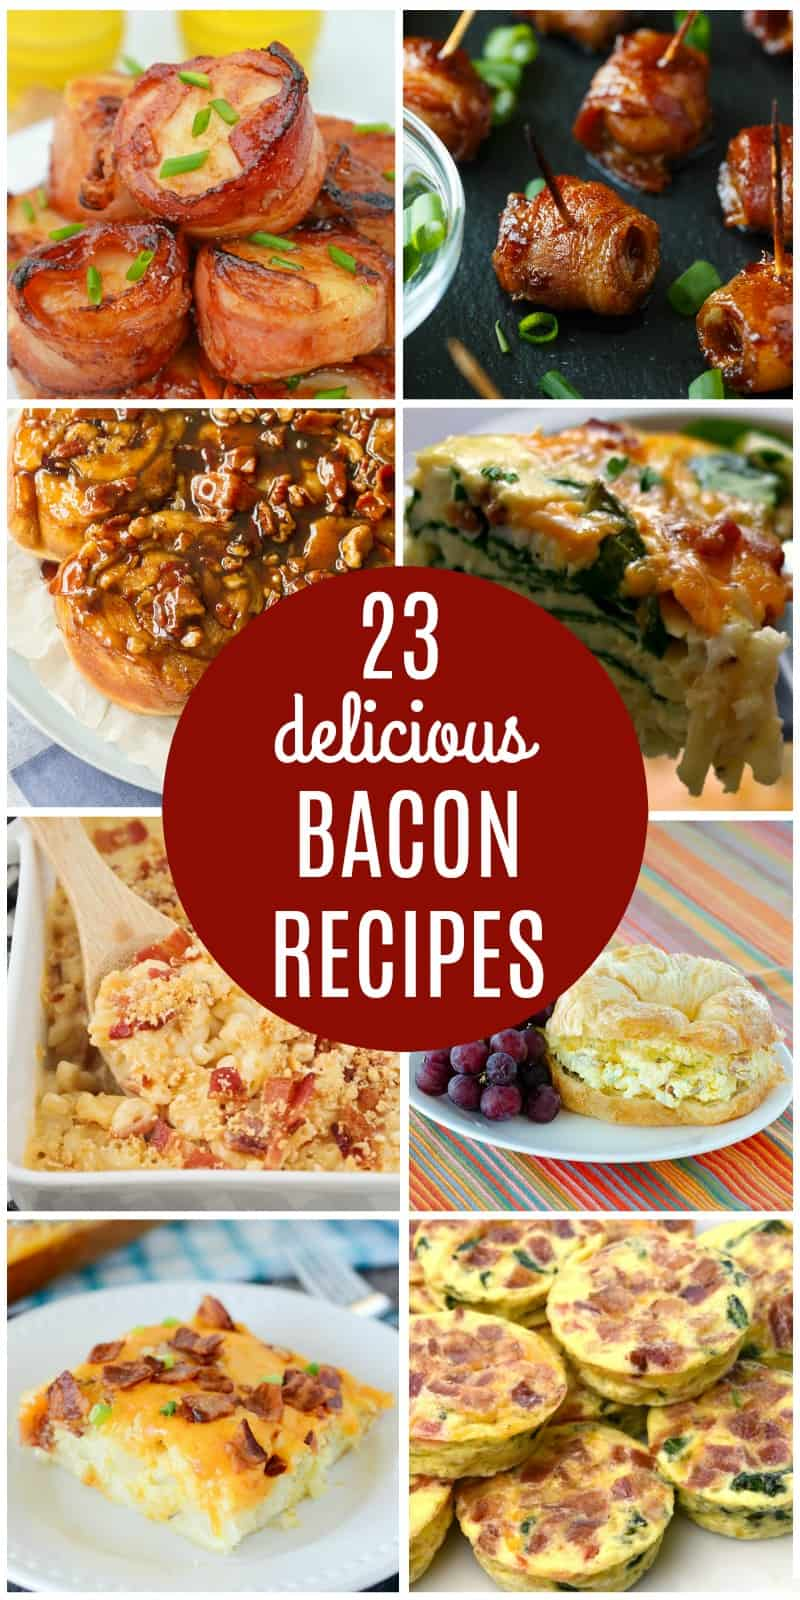 23 Delicious Bacon Recipes!